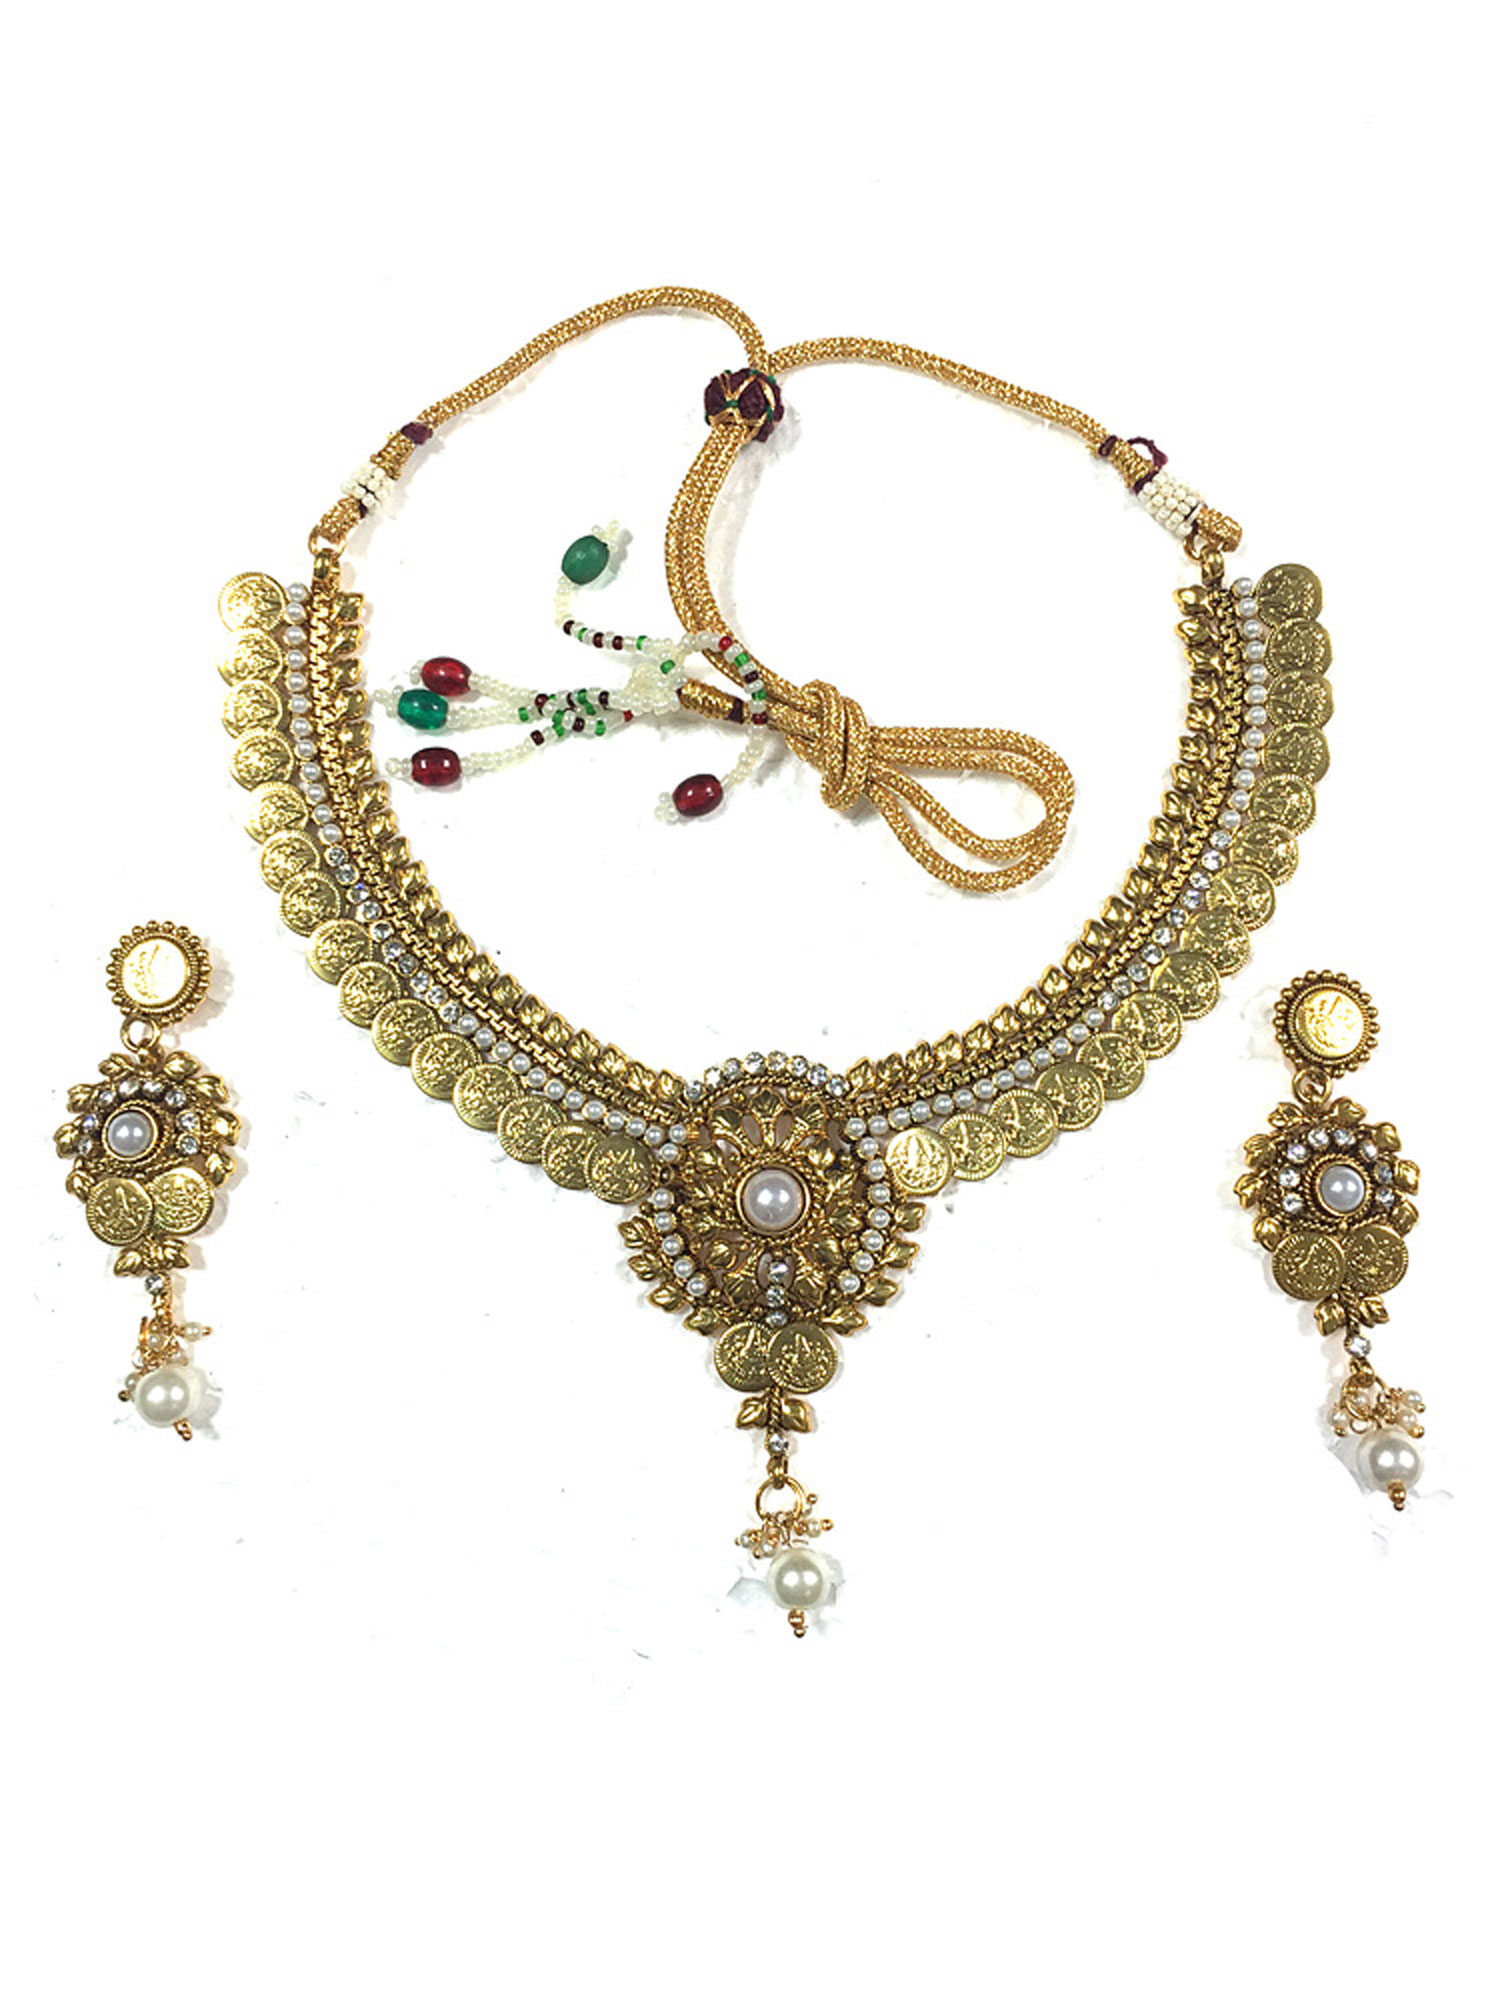 Indian vintage women s fashion party jewelry for Vintage costume jewelry websites